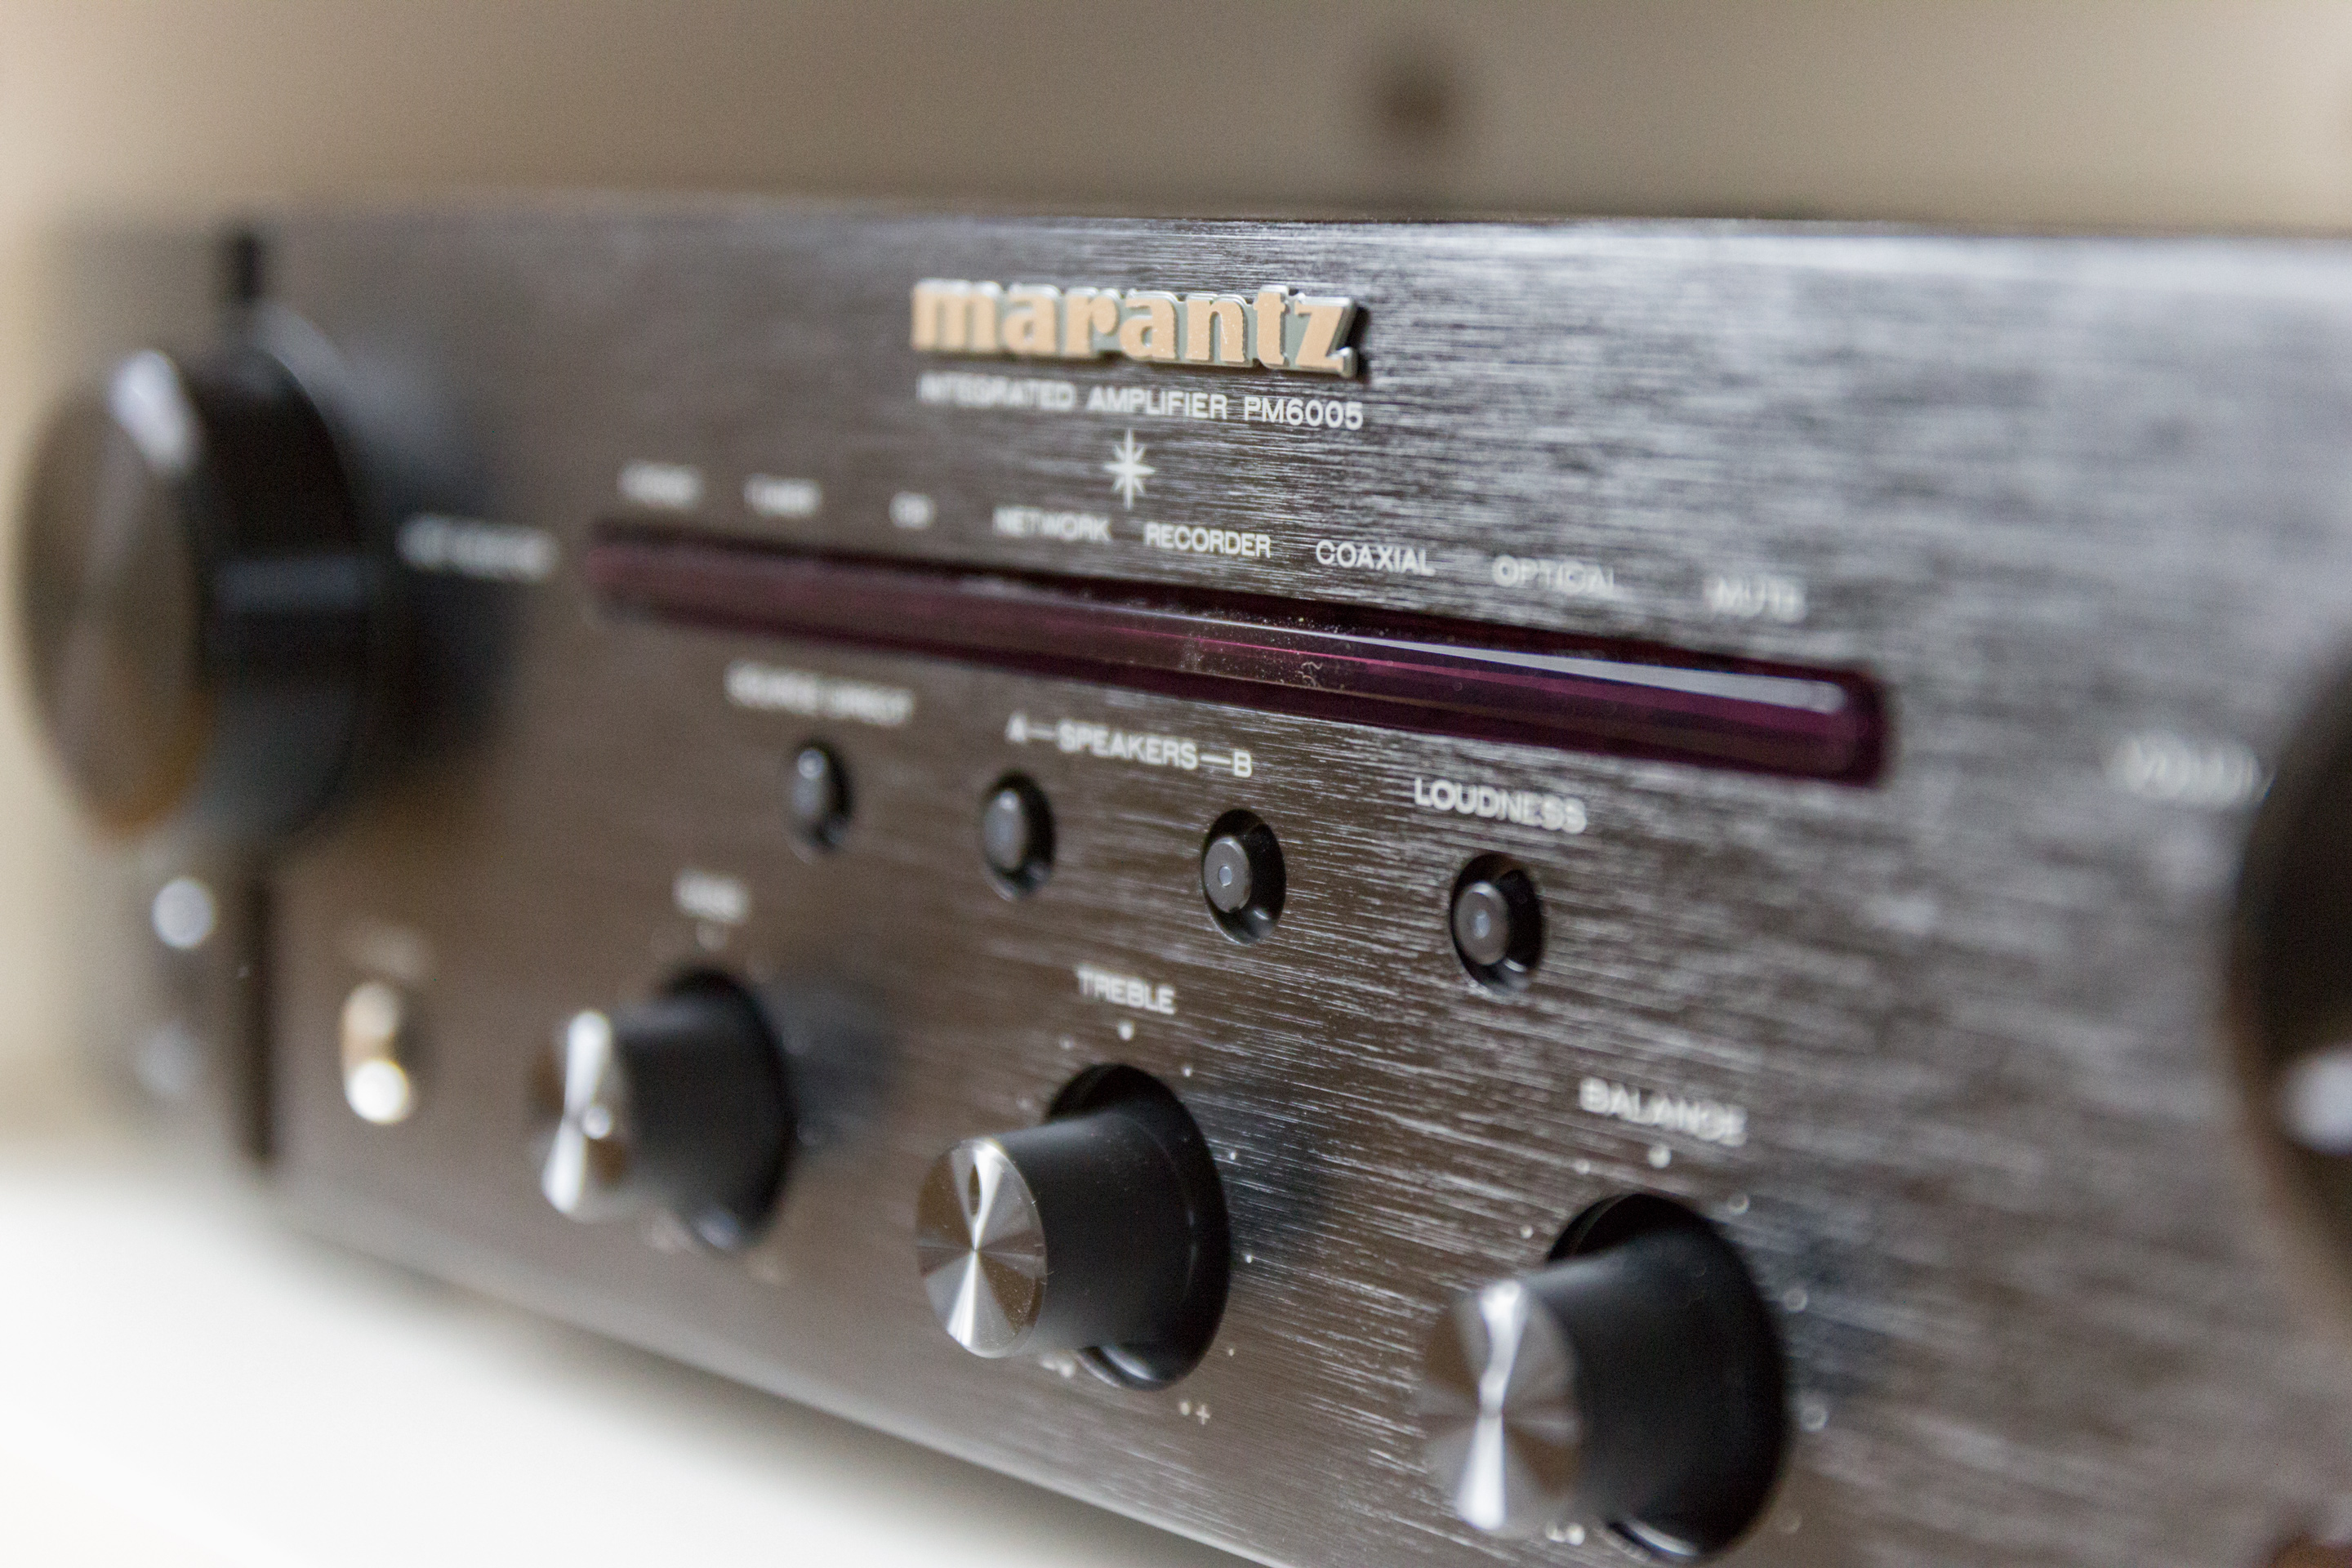 Review: Marantz PM-6005 (with Marantz CD-6005) - Son-Vidéo